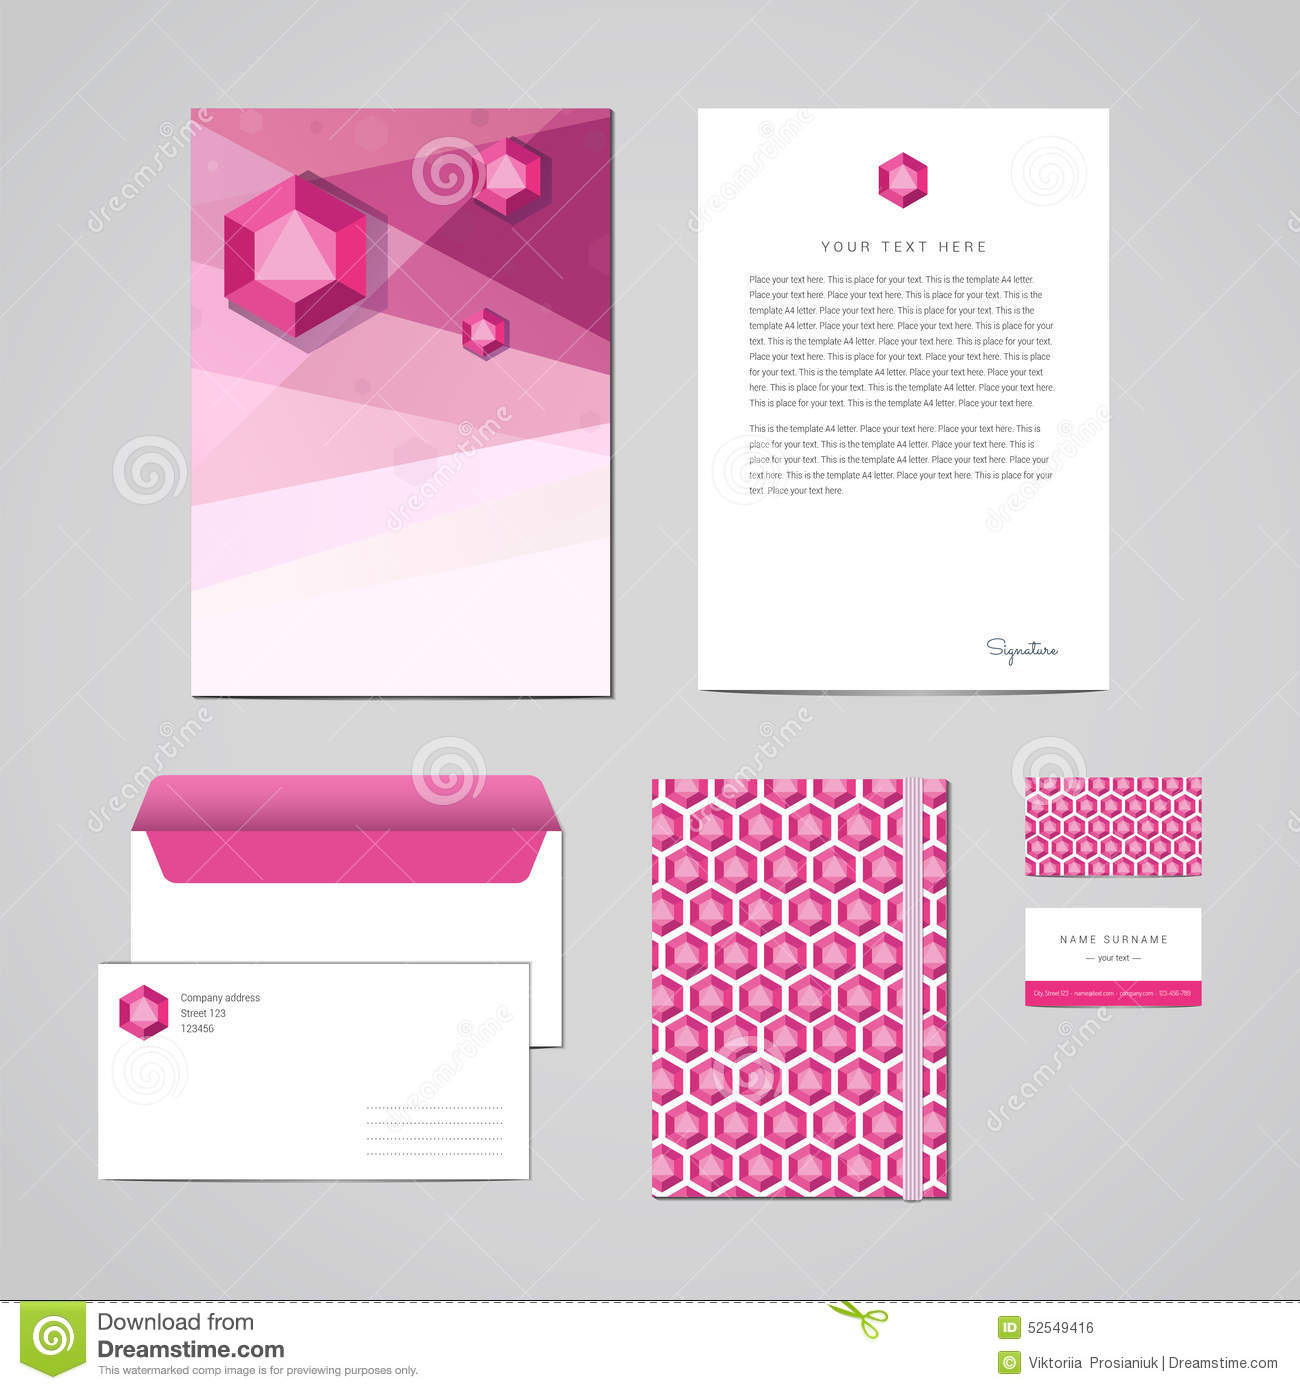 Corporate identity design template documentation for business corporate identity design template documentation for business folder letterhead envelope notebook friedricerecipe Image collections